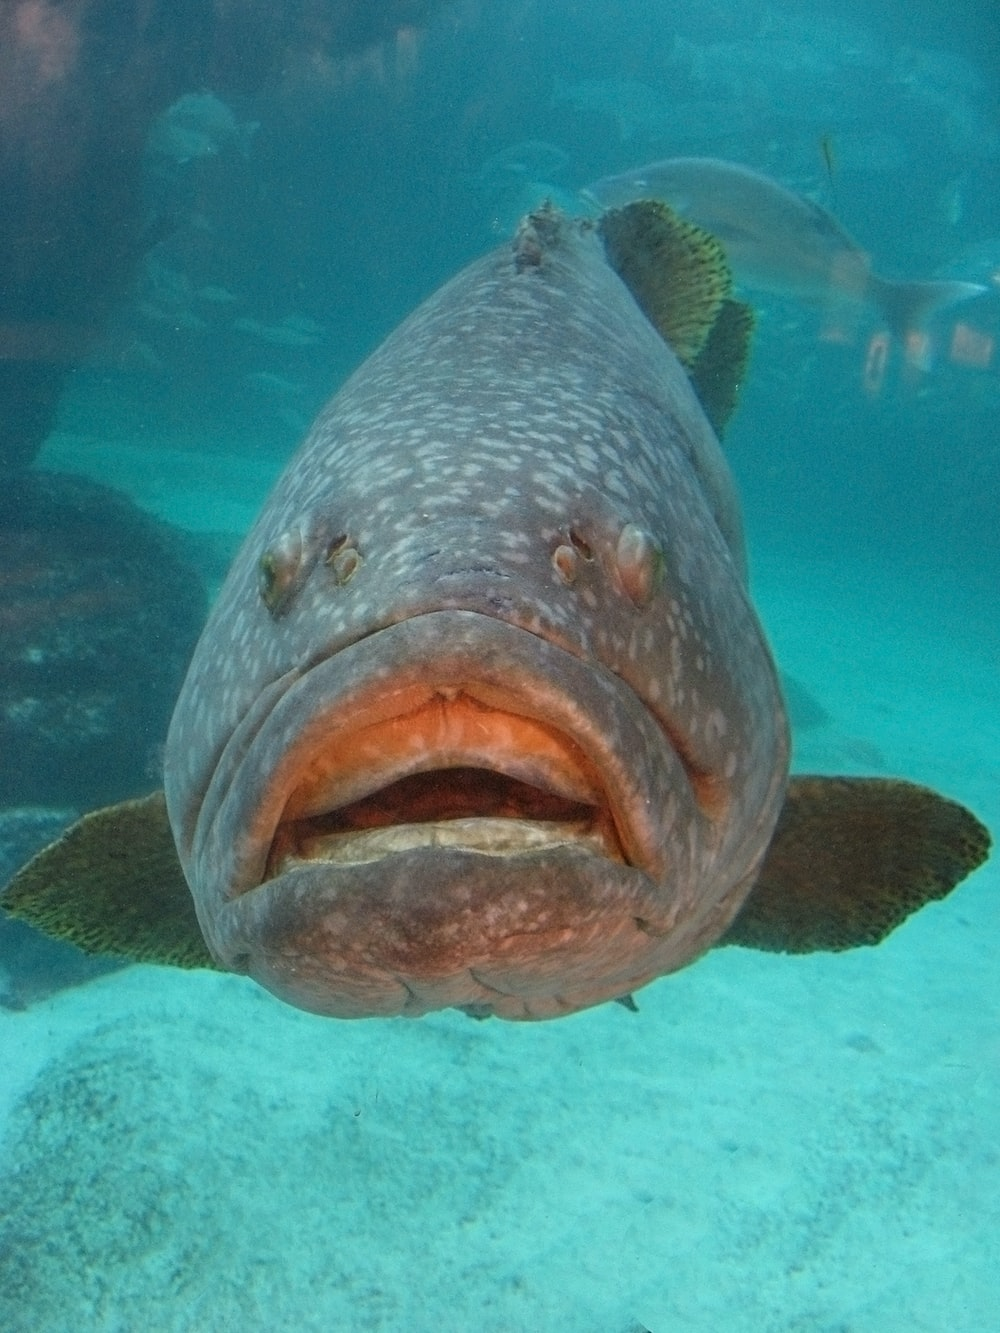 gray spotted fish